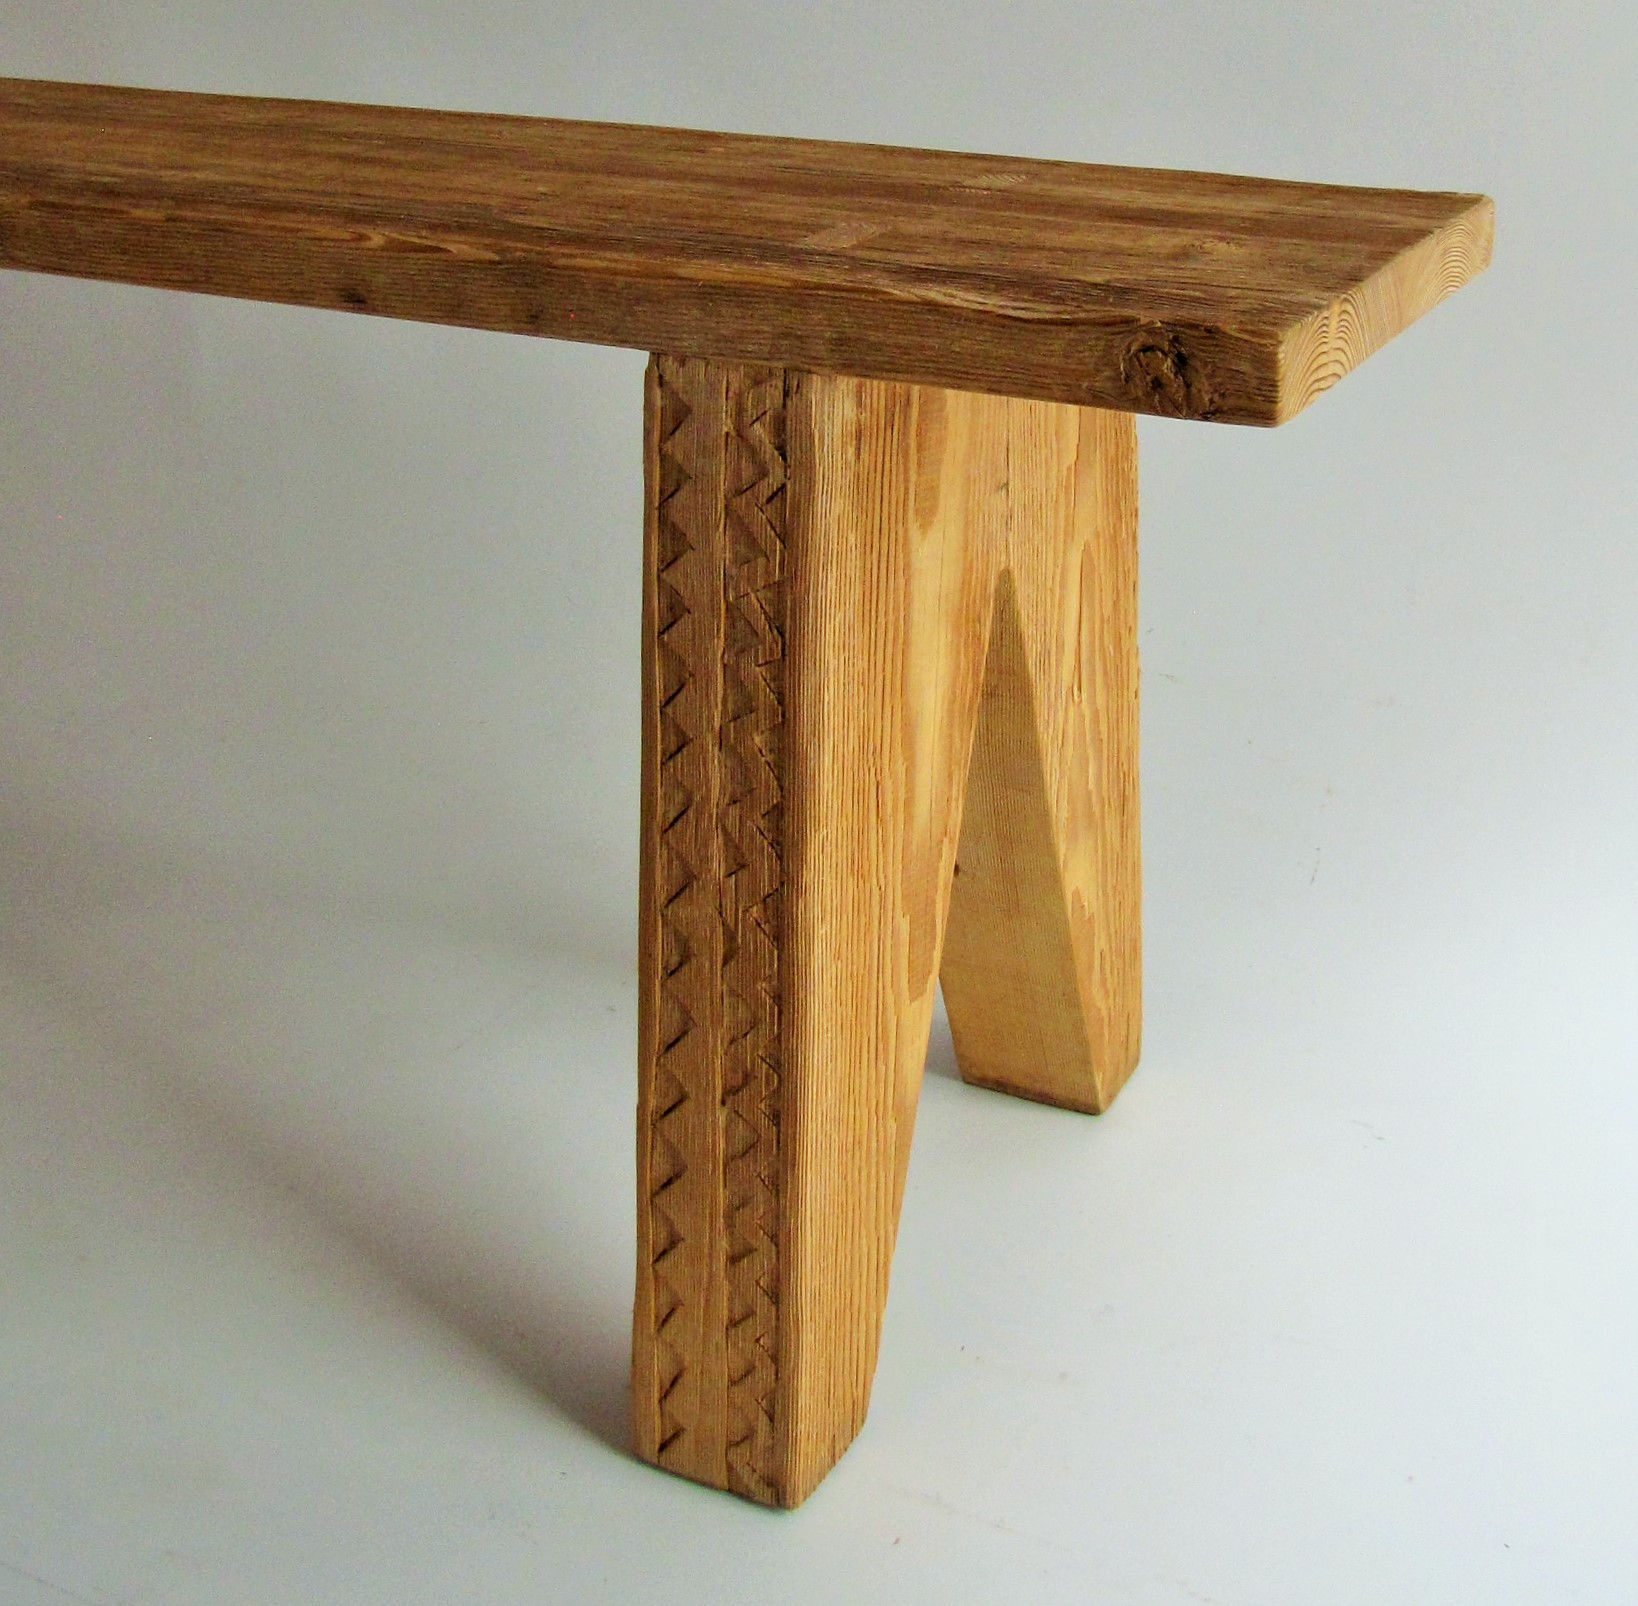 Handcarved benches made from reclaimed Oregon pine